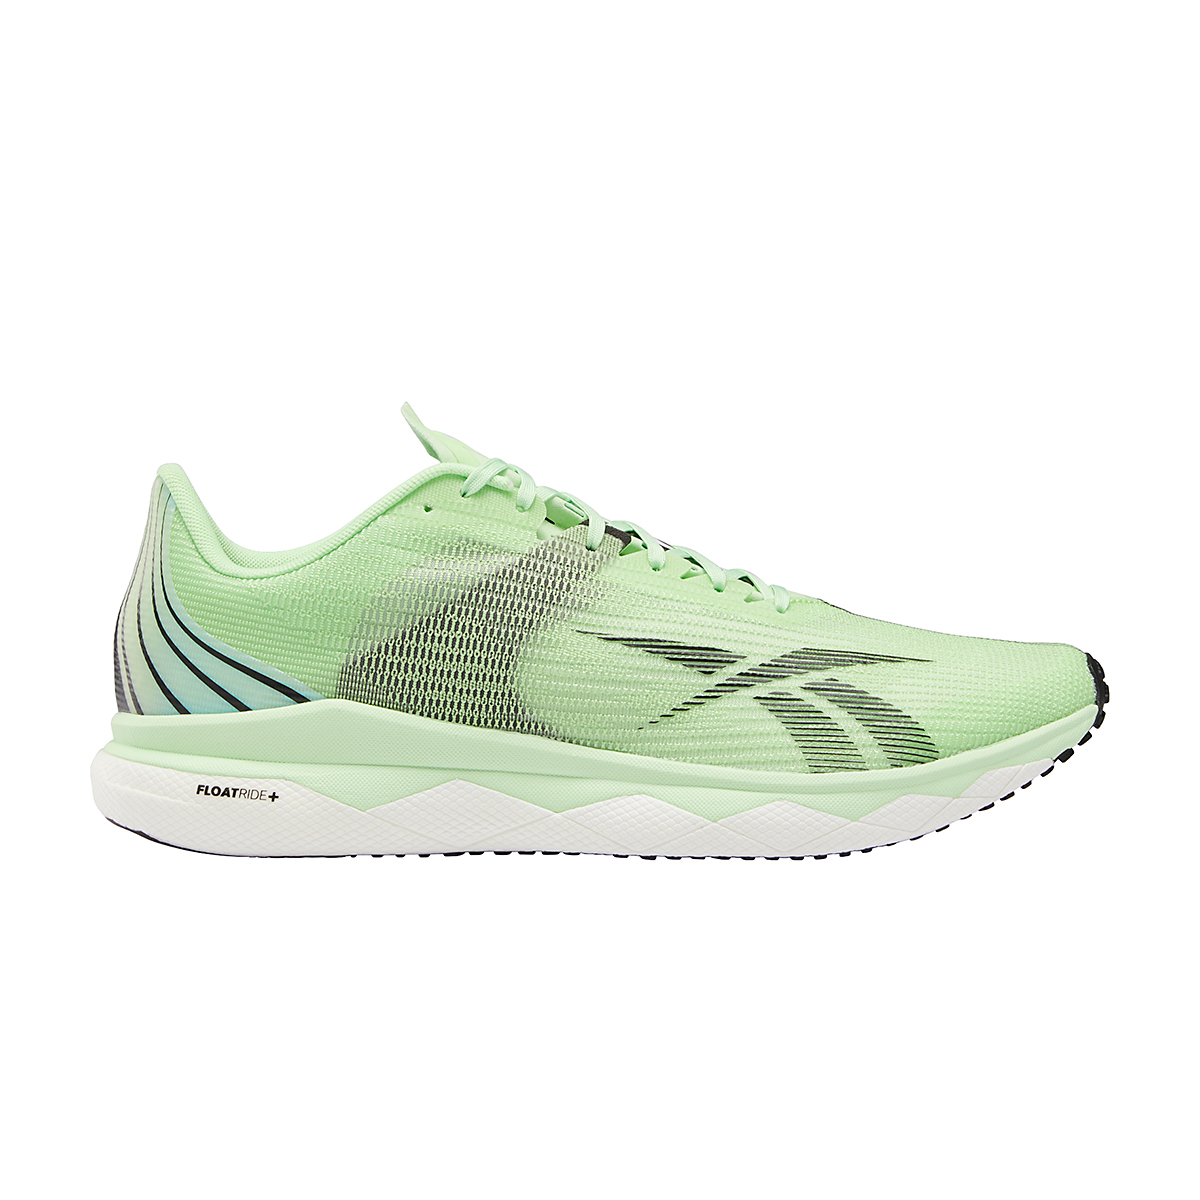 Men's Reebok Floatride Run Fast 3.0 Running Shoe - Color: Neon Mint/White/Core Black - Size: 7 - Width: Regular, Neon Mint/White/Core Black, large, image 1